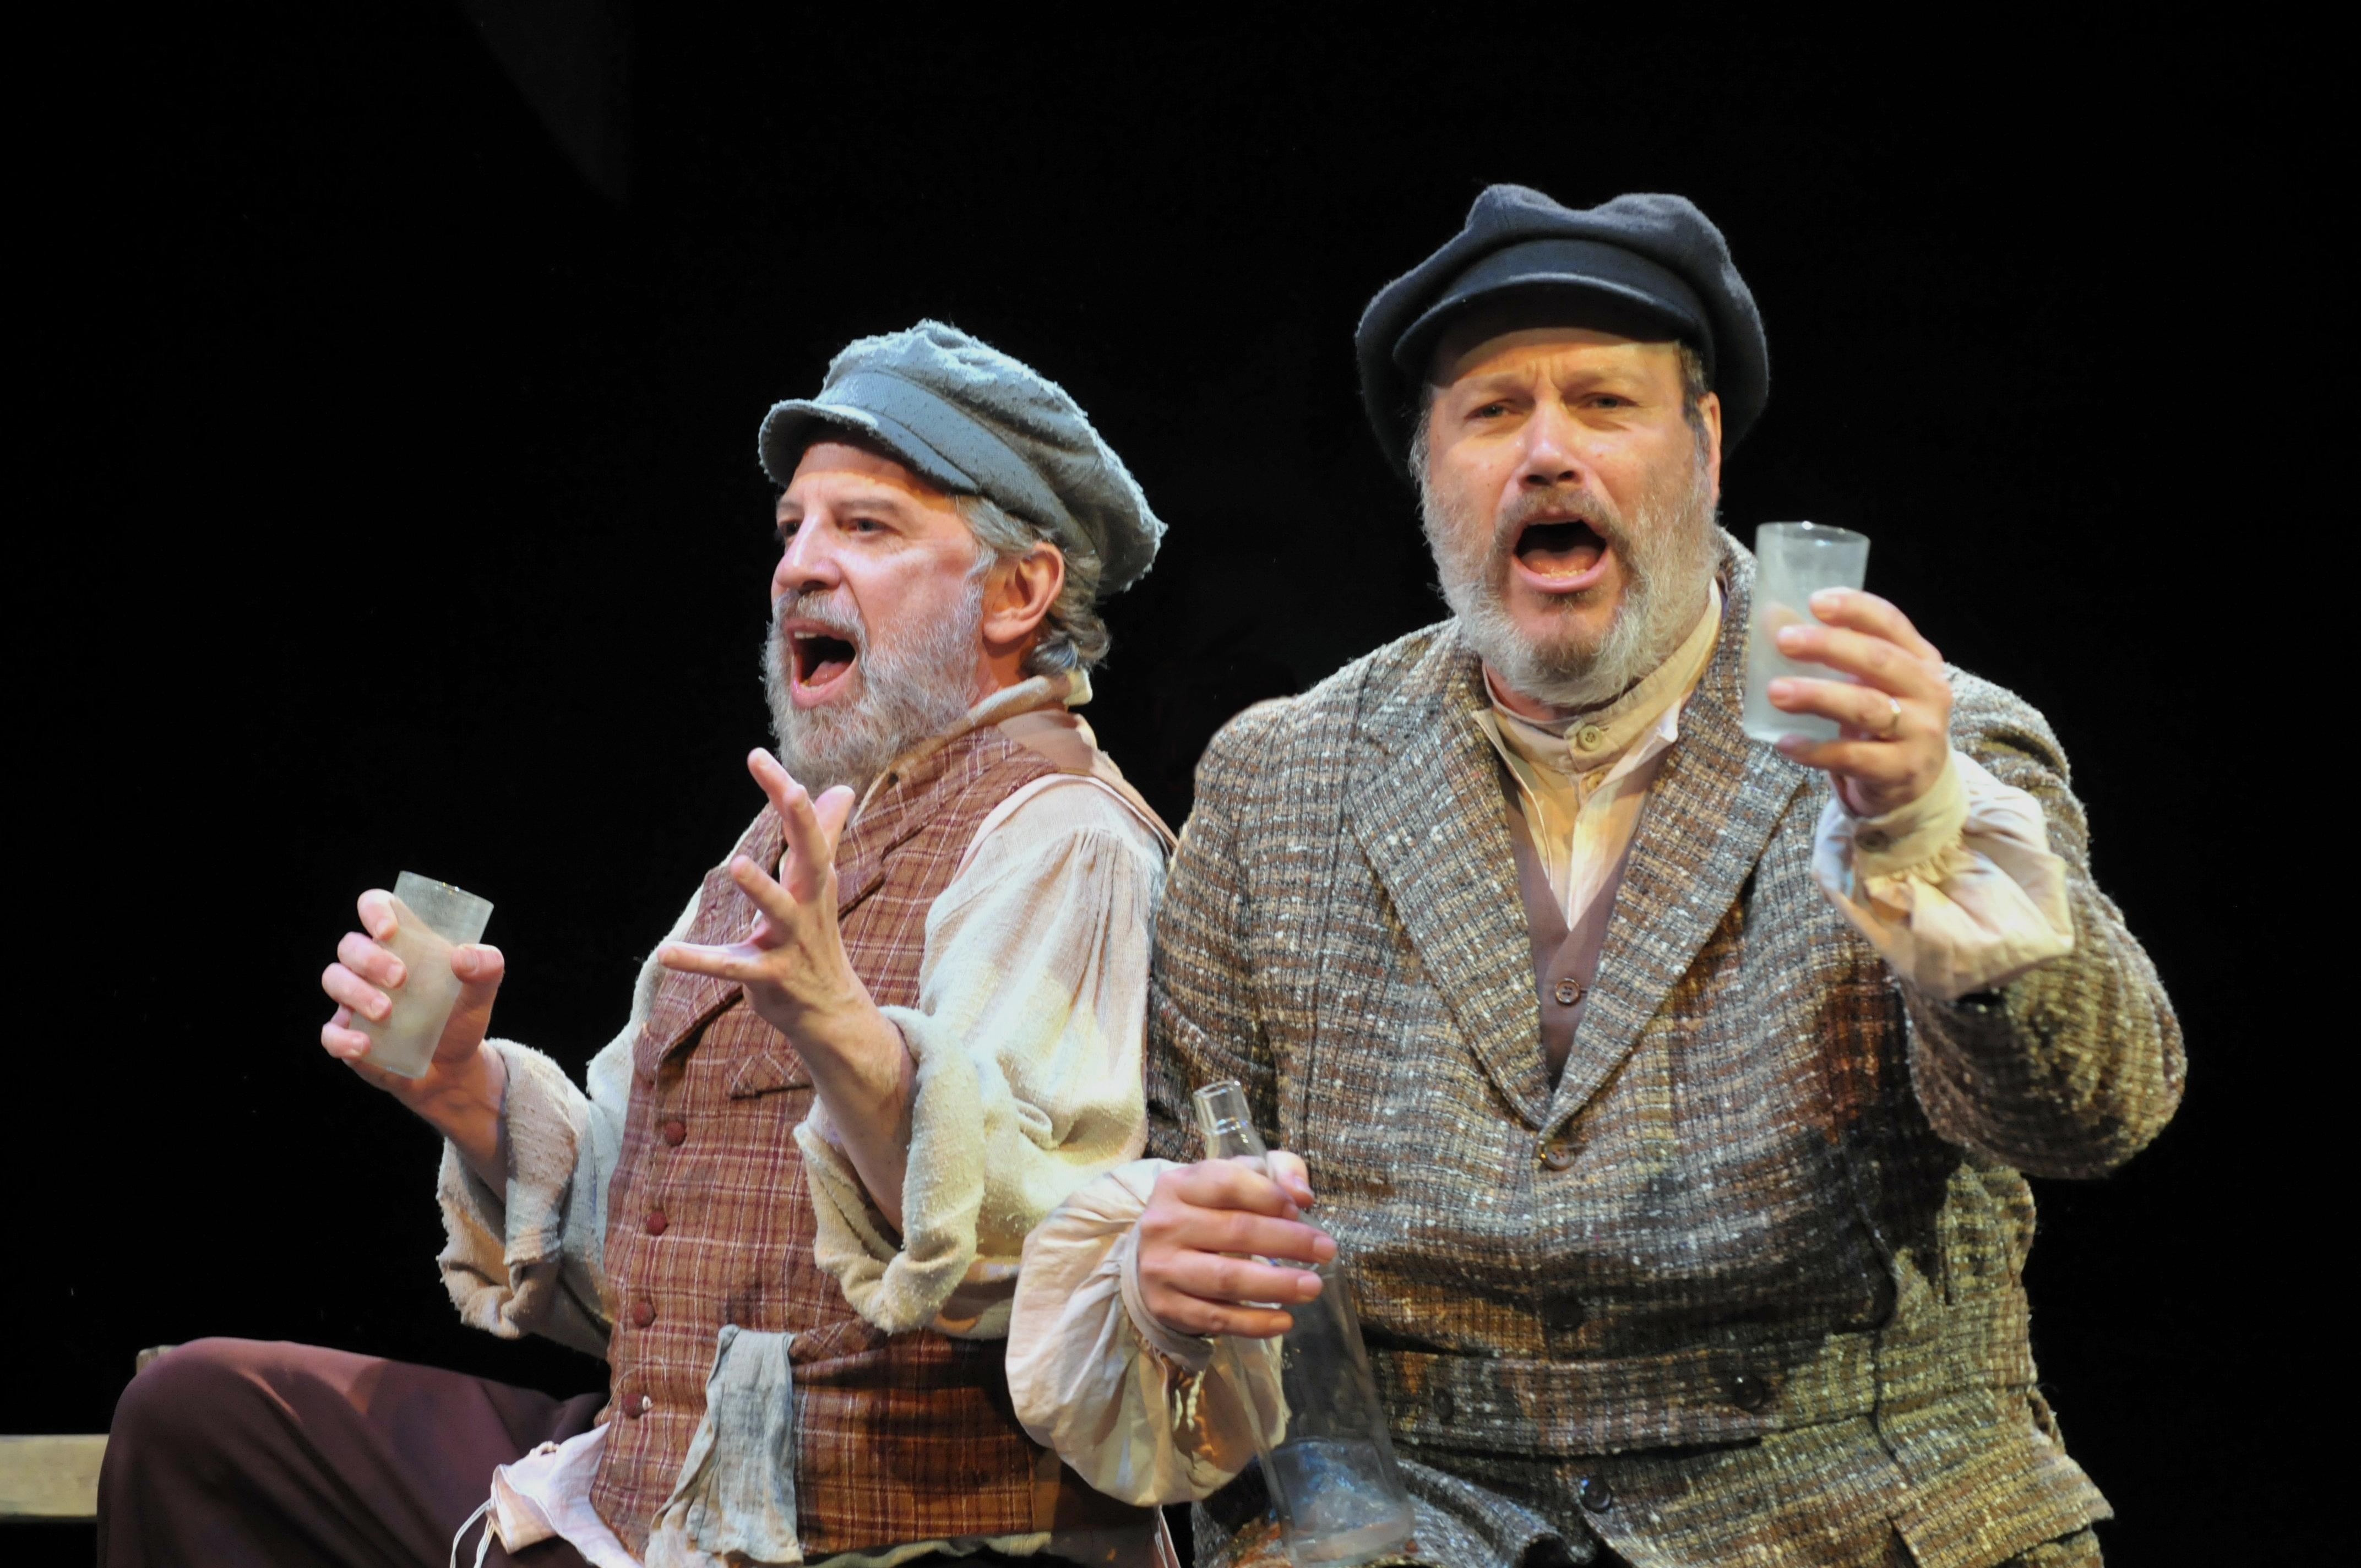 Lincolnshire's 'Fiddler': A Must-See, With Quibbles